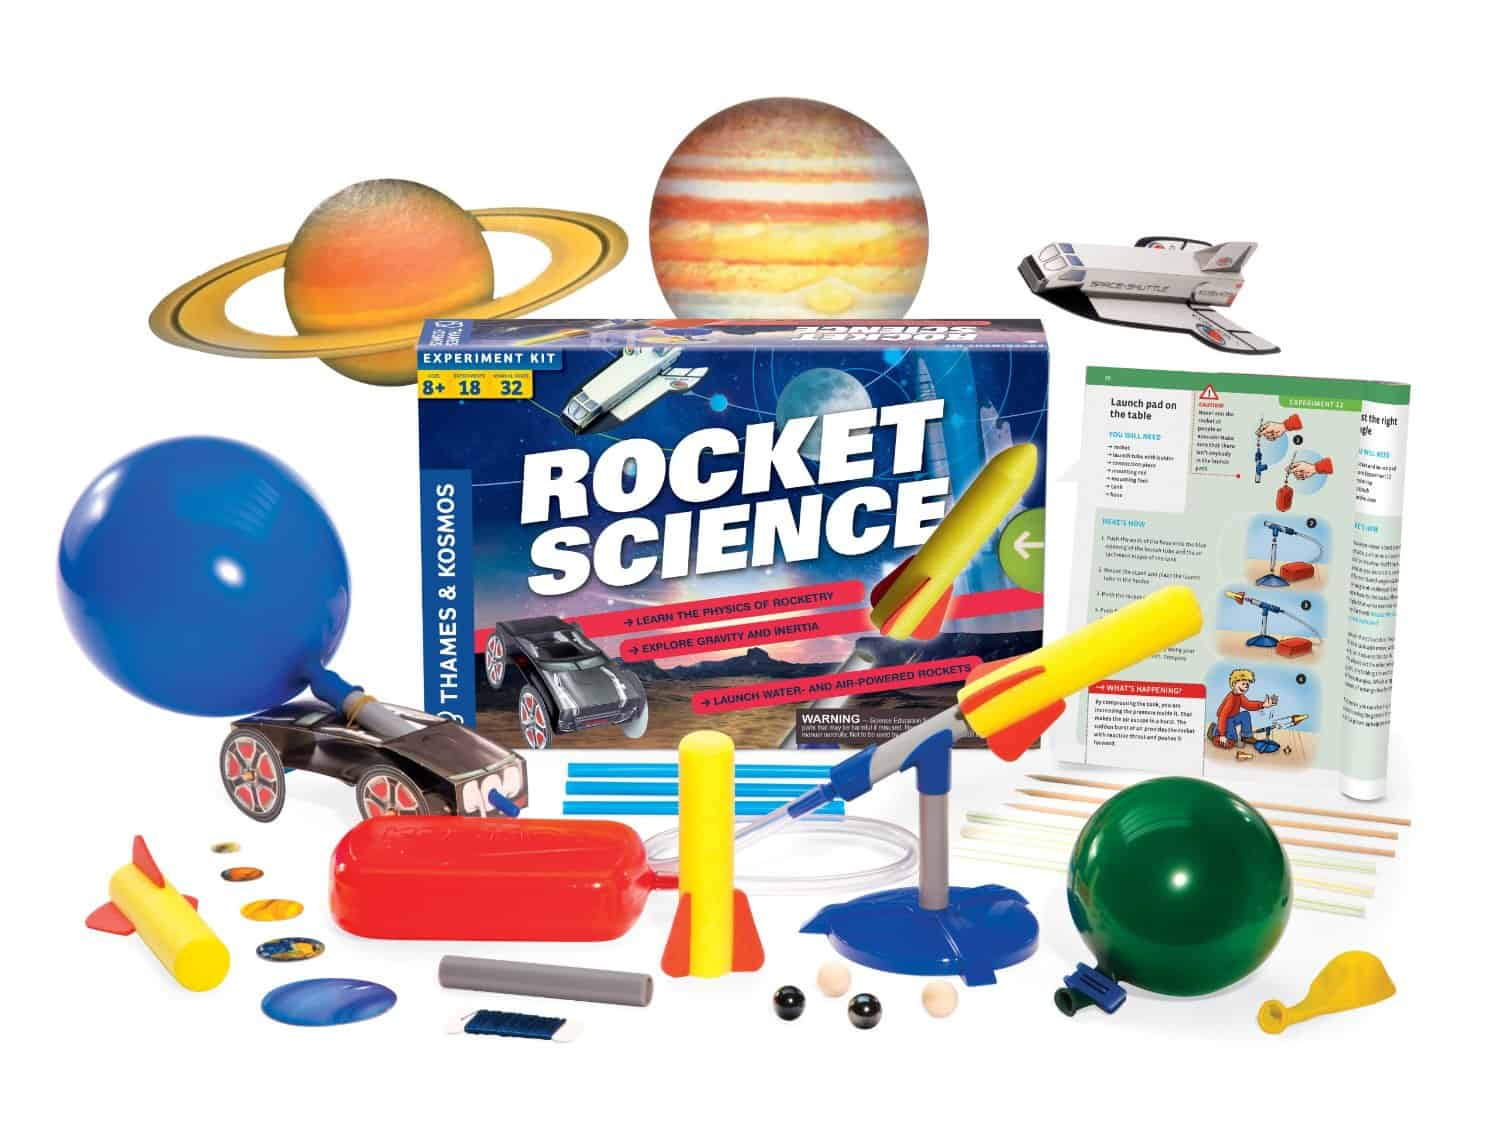 Spaceship Toys For Boys : Best science gifts for teen boys ben and me